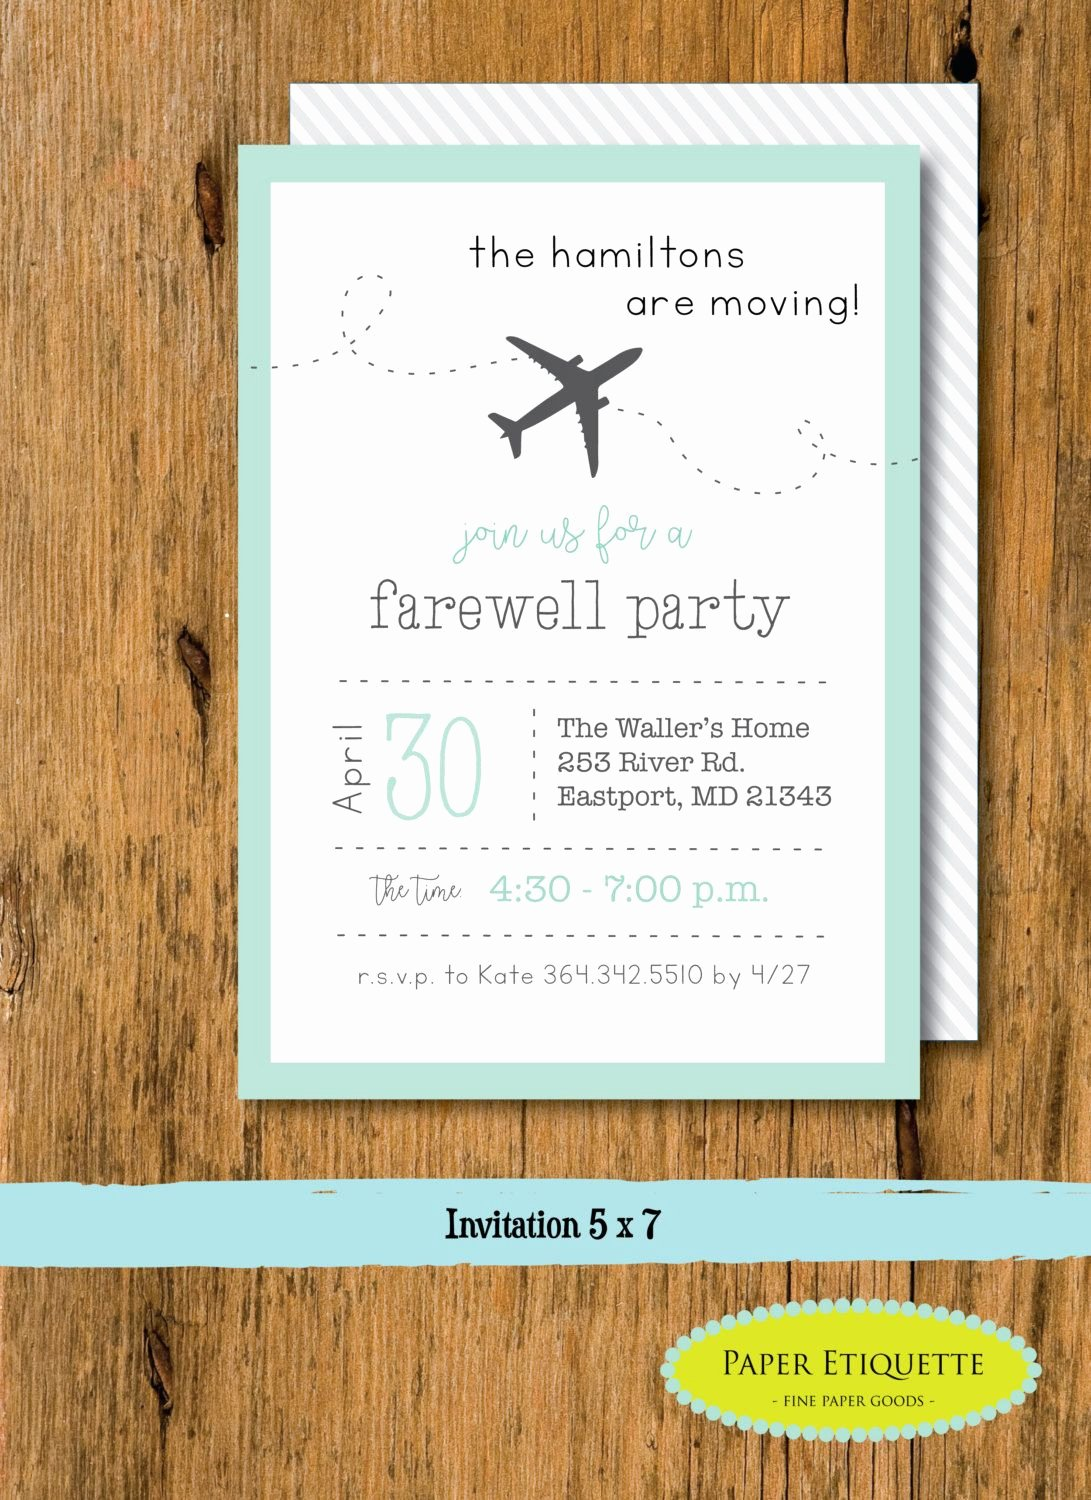 Going Away Party Invitation Luxury Going Away Party Moving Party Invitation Beer Packing